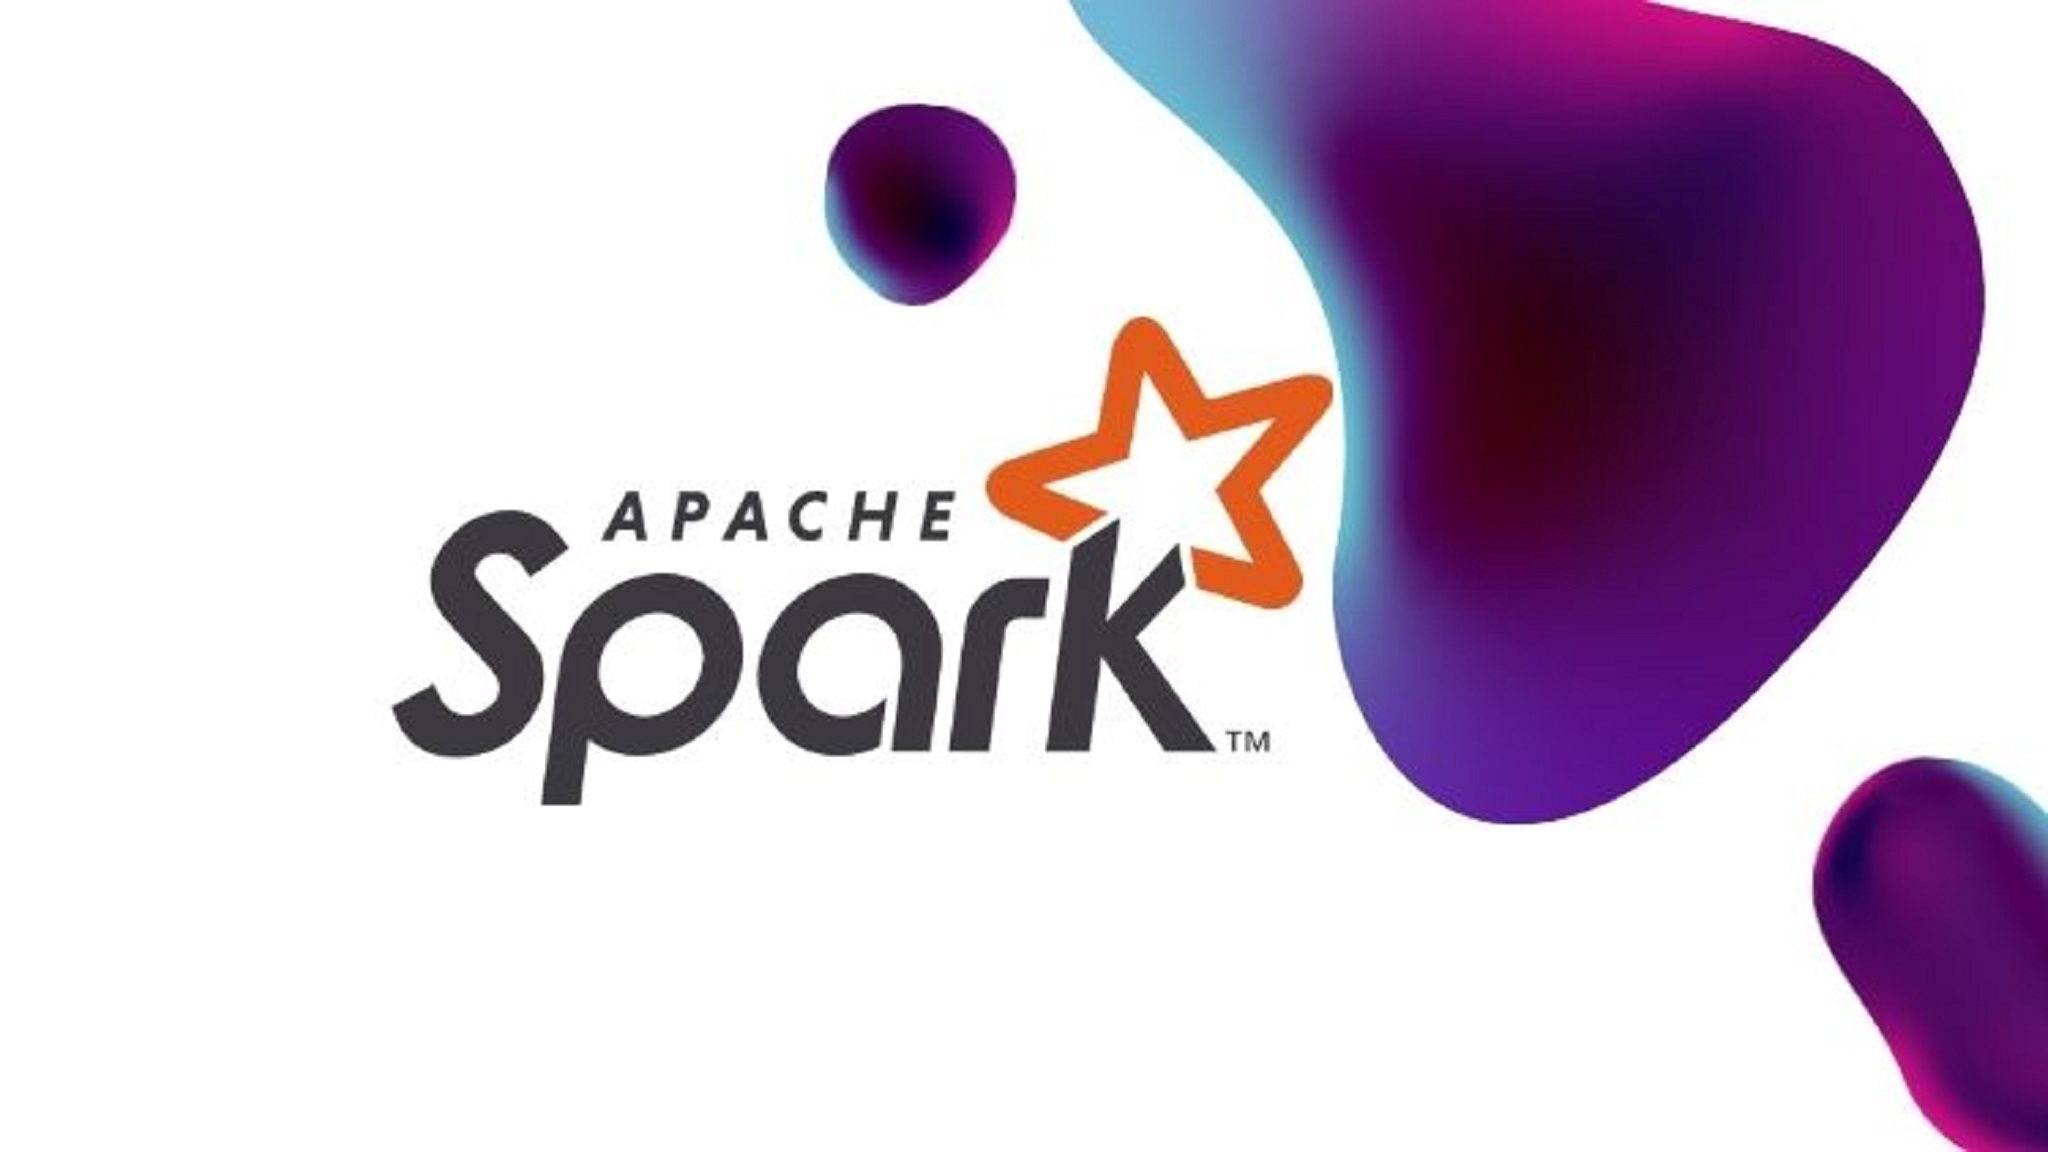 Machine Learning with Apache Spark 3.0 using Scala